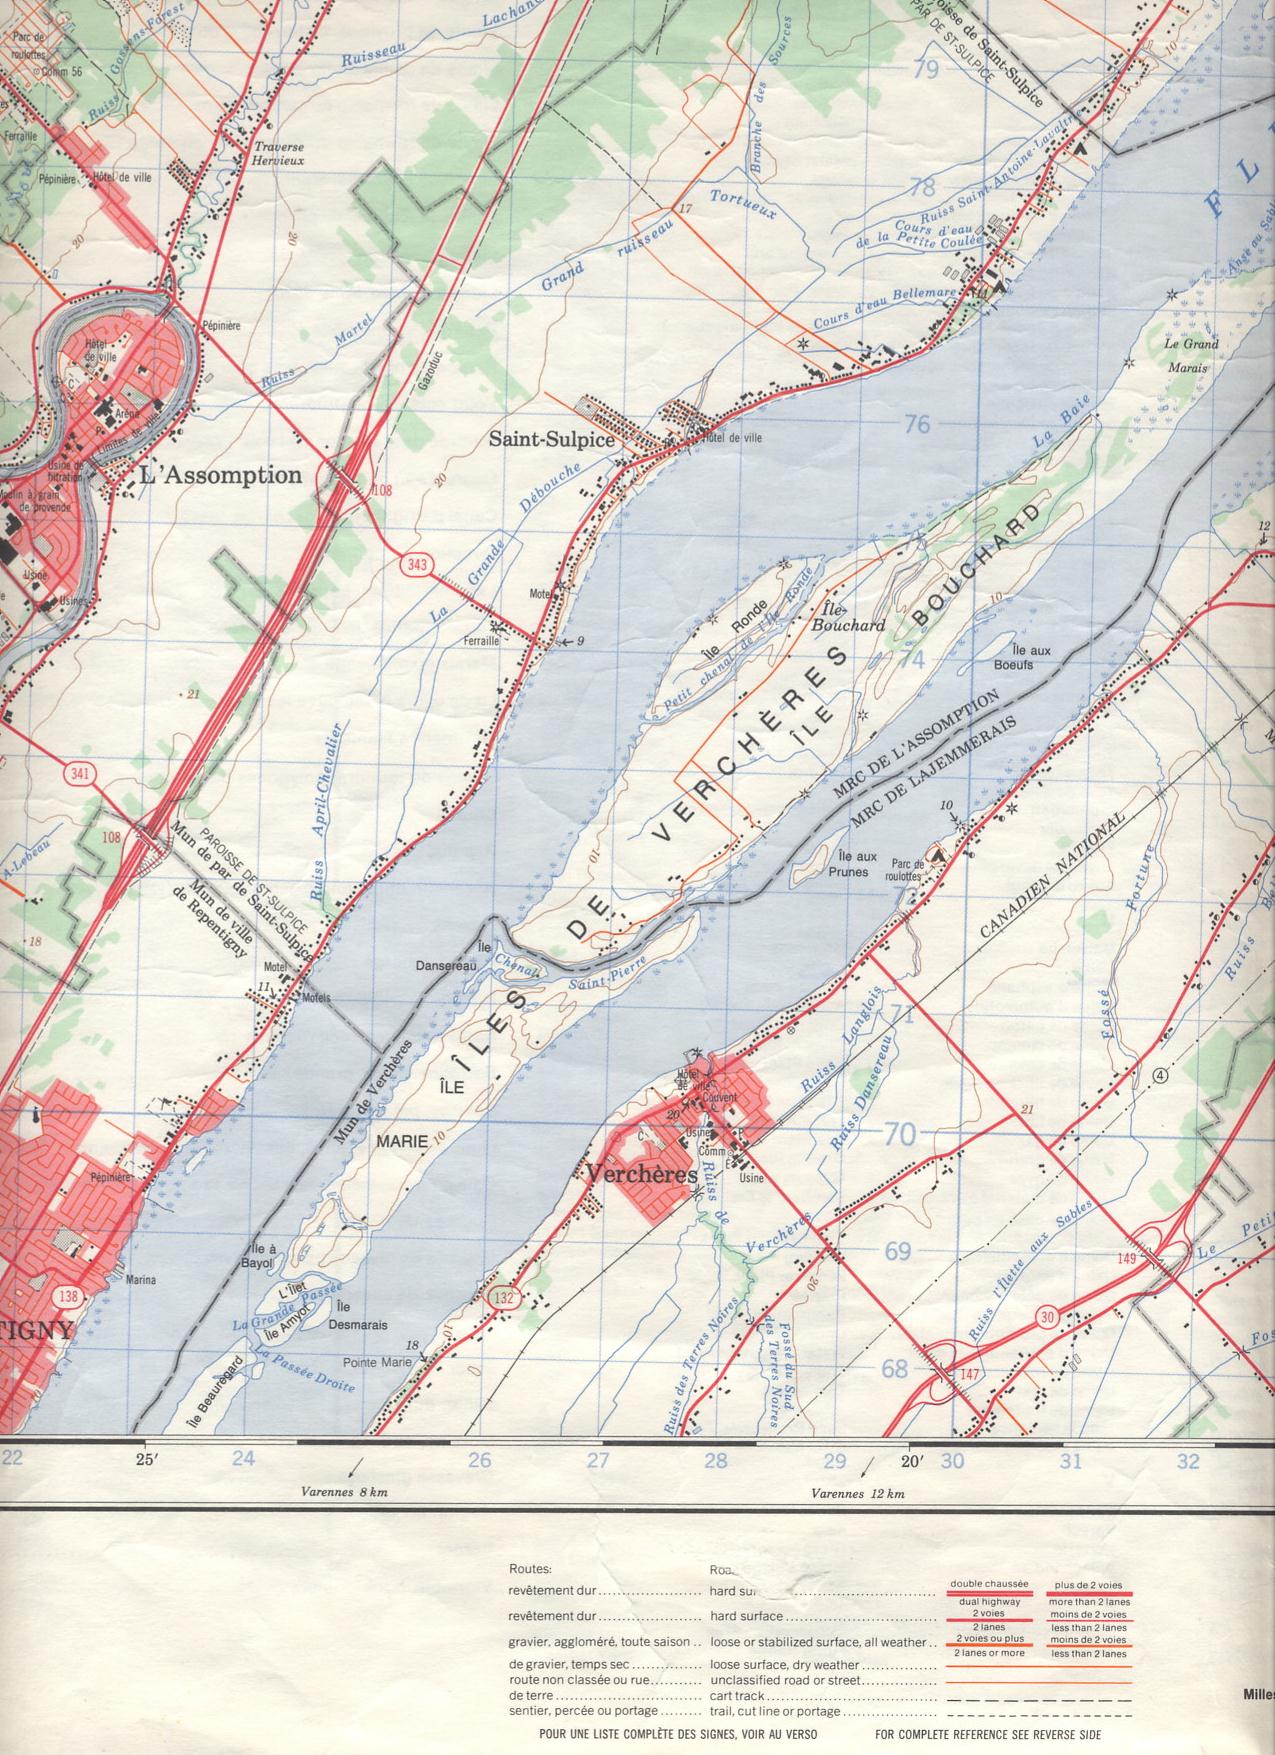 Uwec geog188 vogeler topographic maps french canada the topographic map assignment that deals with vercheres quebec province 150000 shows very interesting things about the french canadian landscape gumiabroncs Gallery